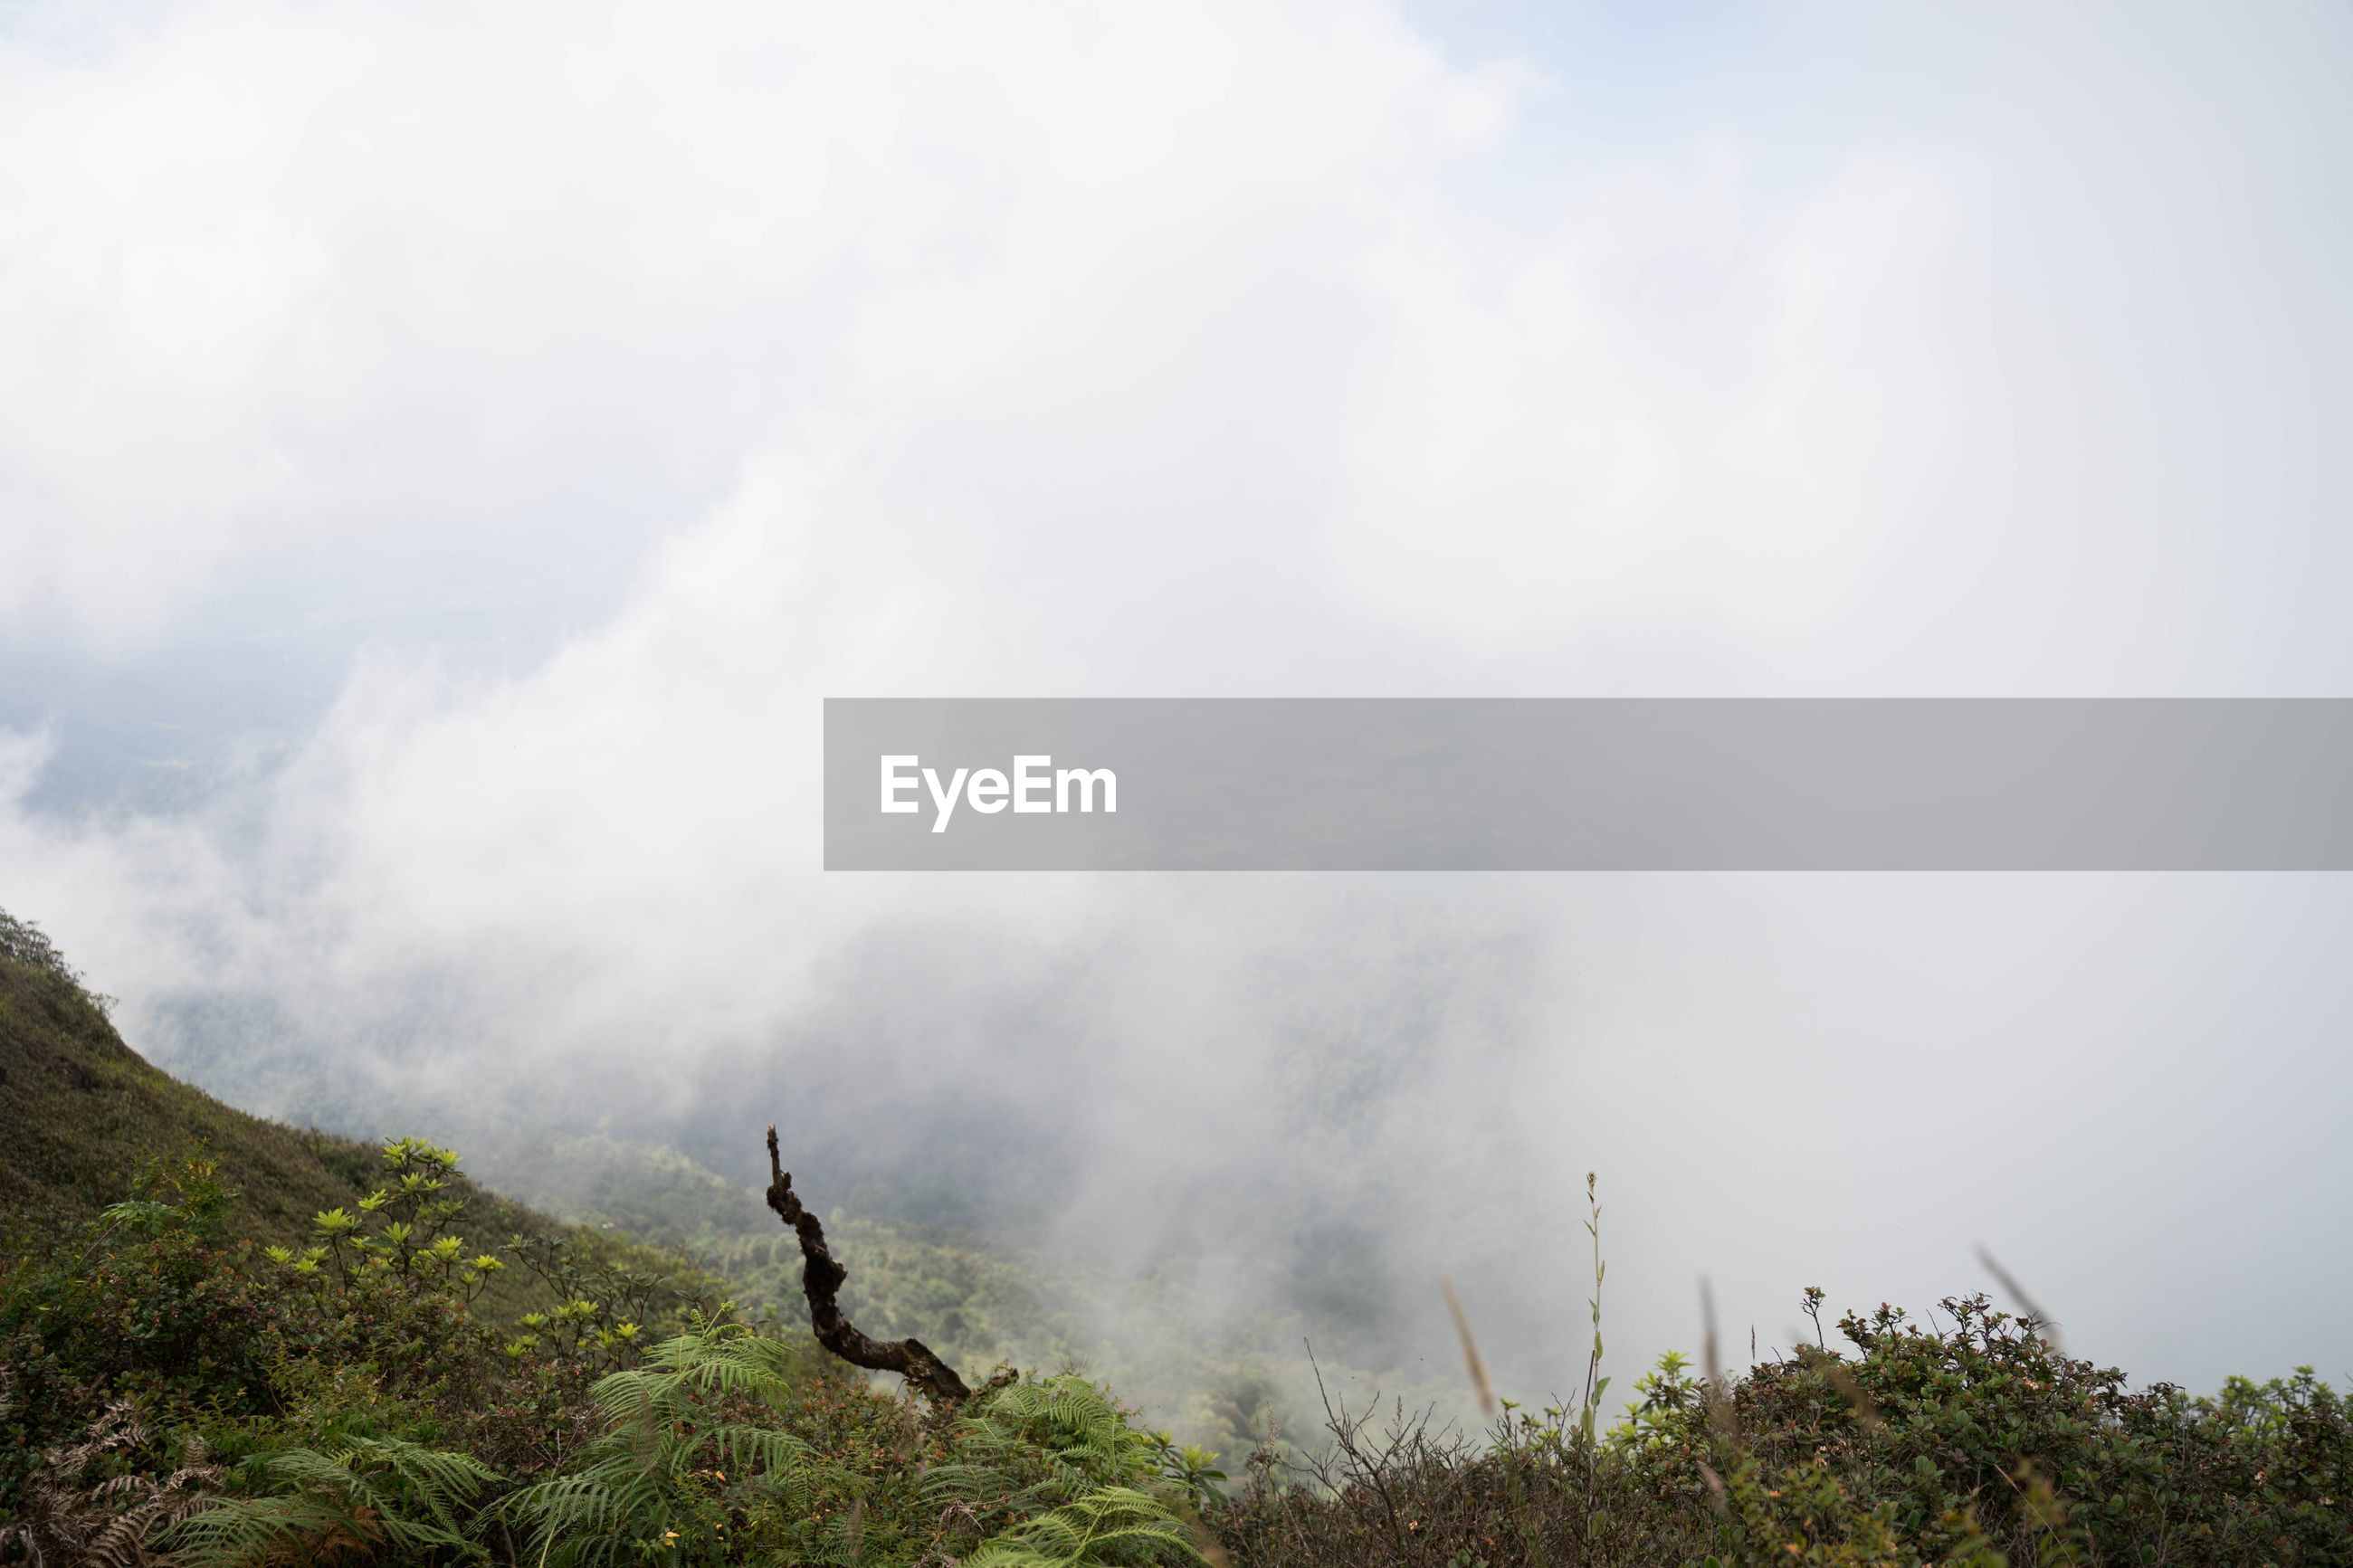 SCENIC VIEW OF FOG AGAINST SKY